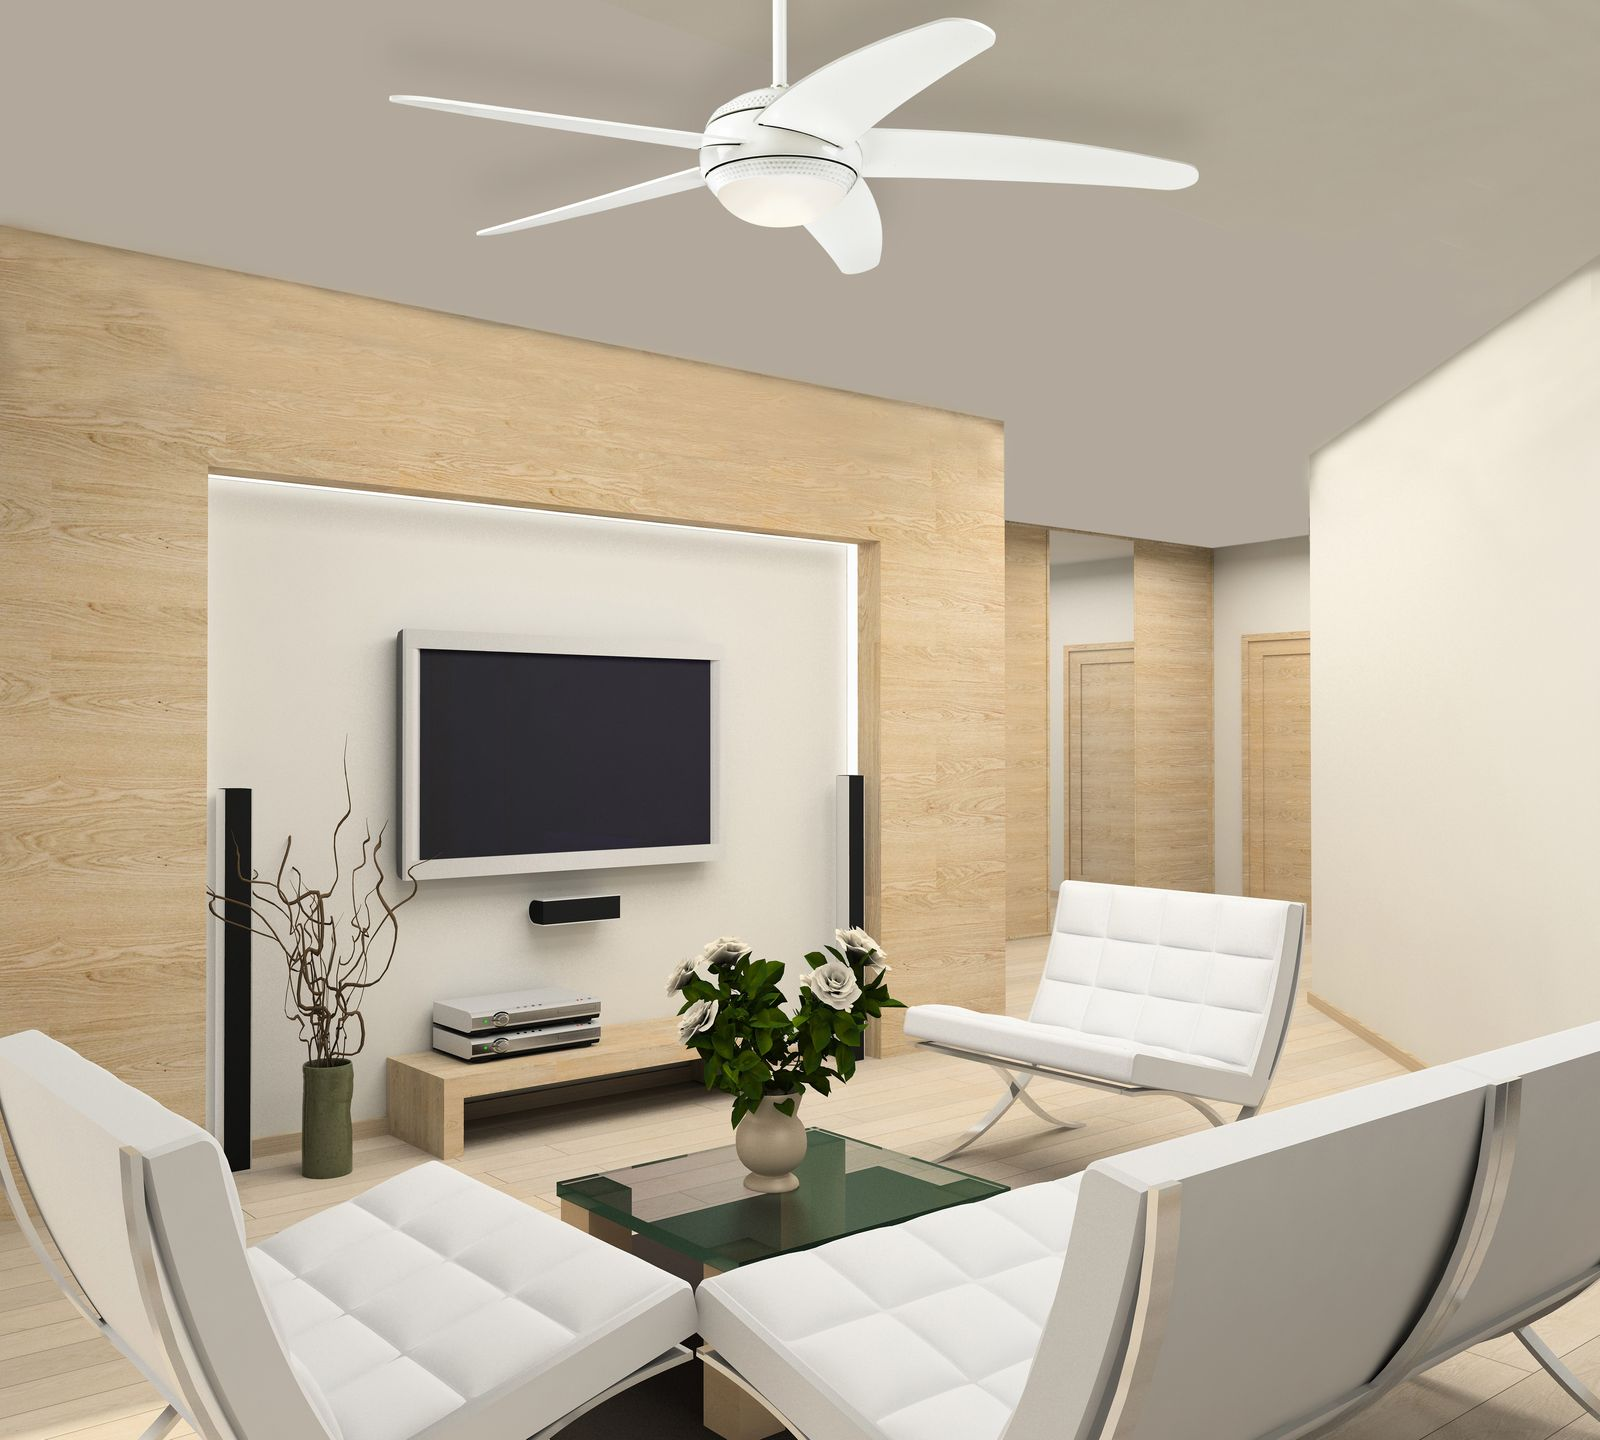 deckenventilator bendan wei inklusive led beleuchtung von westinghouse. Black Bedroom Furniture Sets. Home Design Ideas